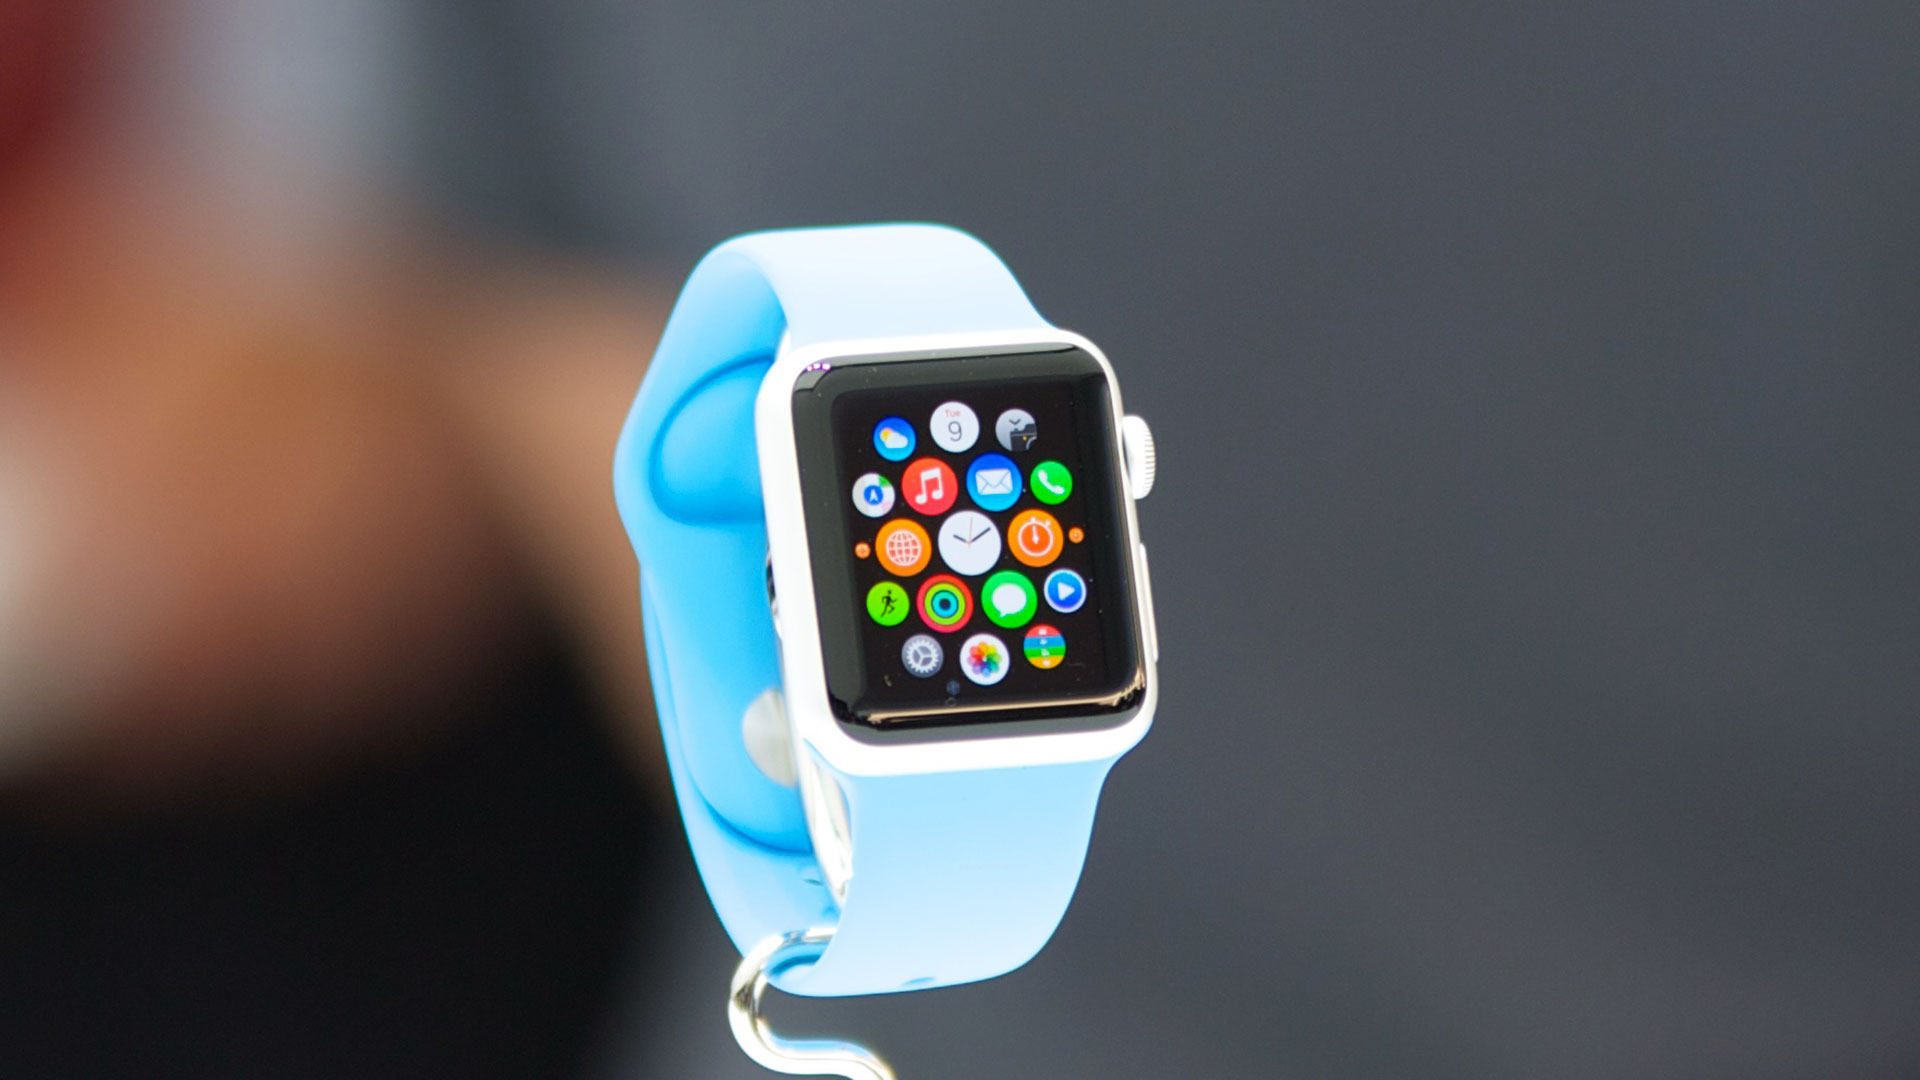 Live Wallpaper Iphone 6s 10 Things You Need To Know About The Apple Watch Imore